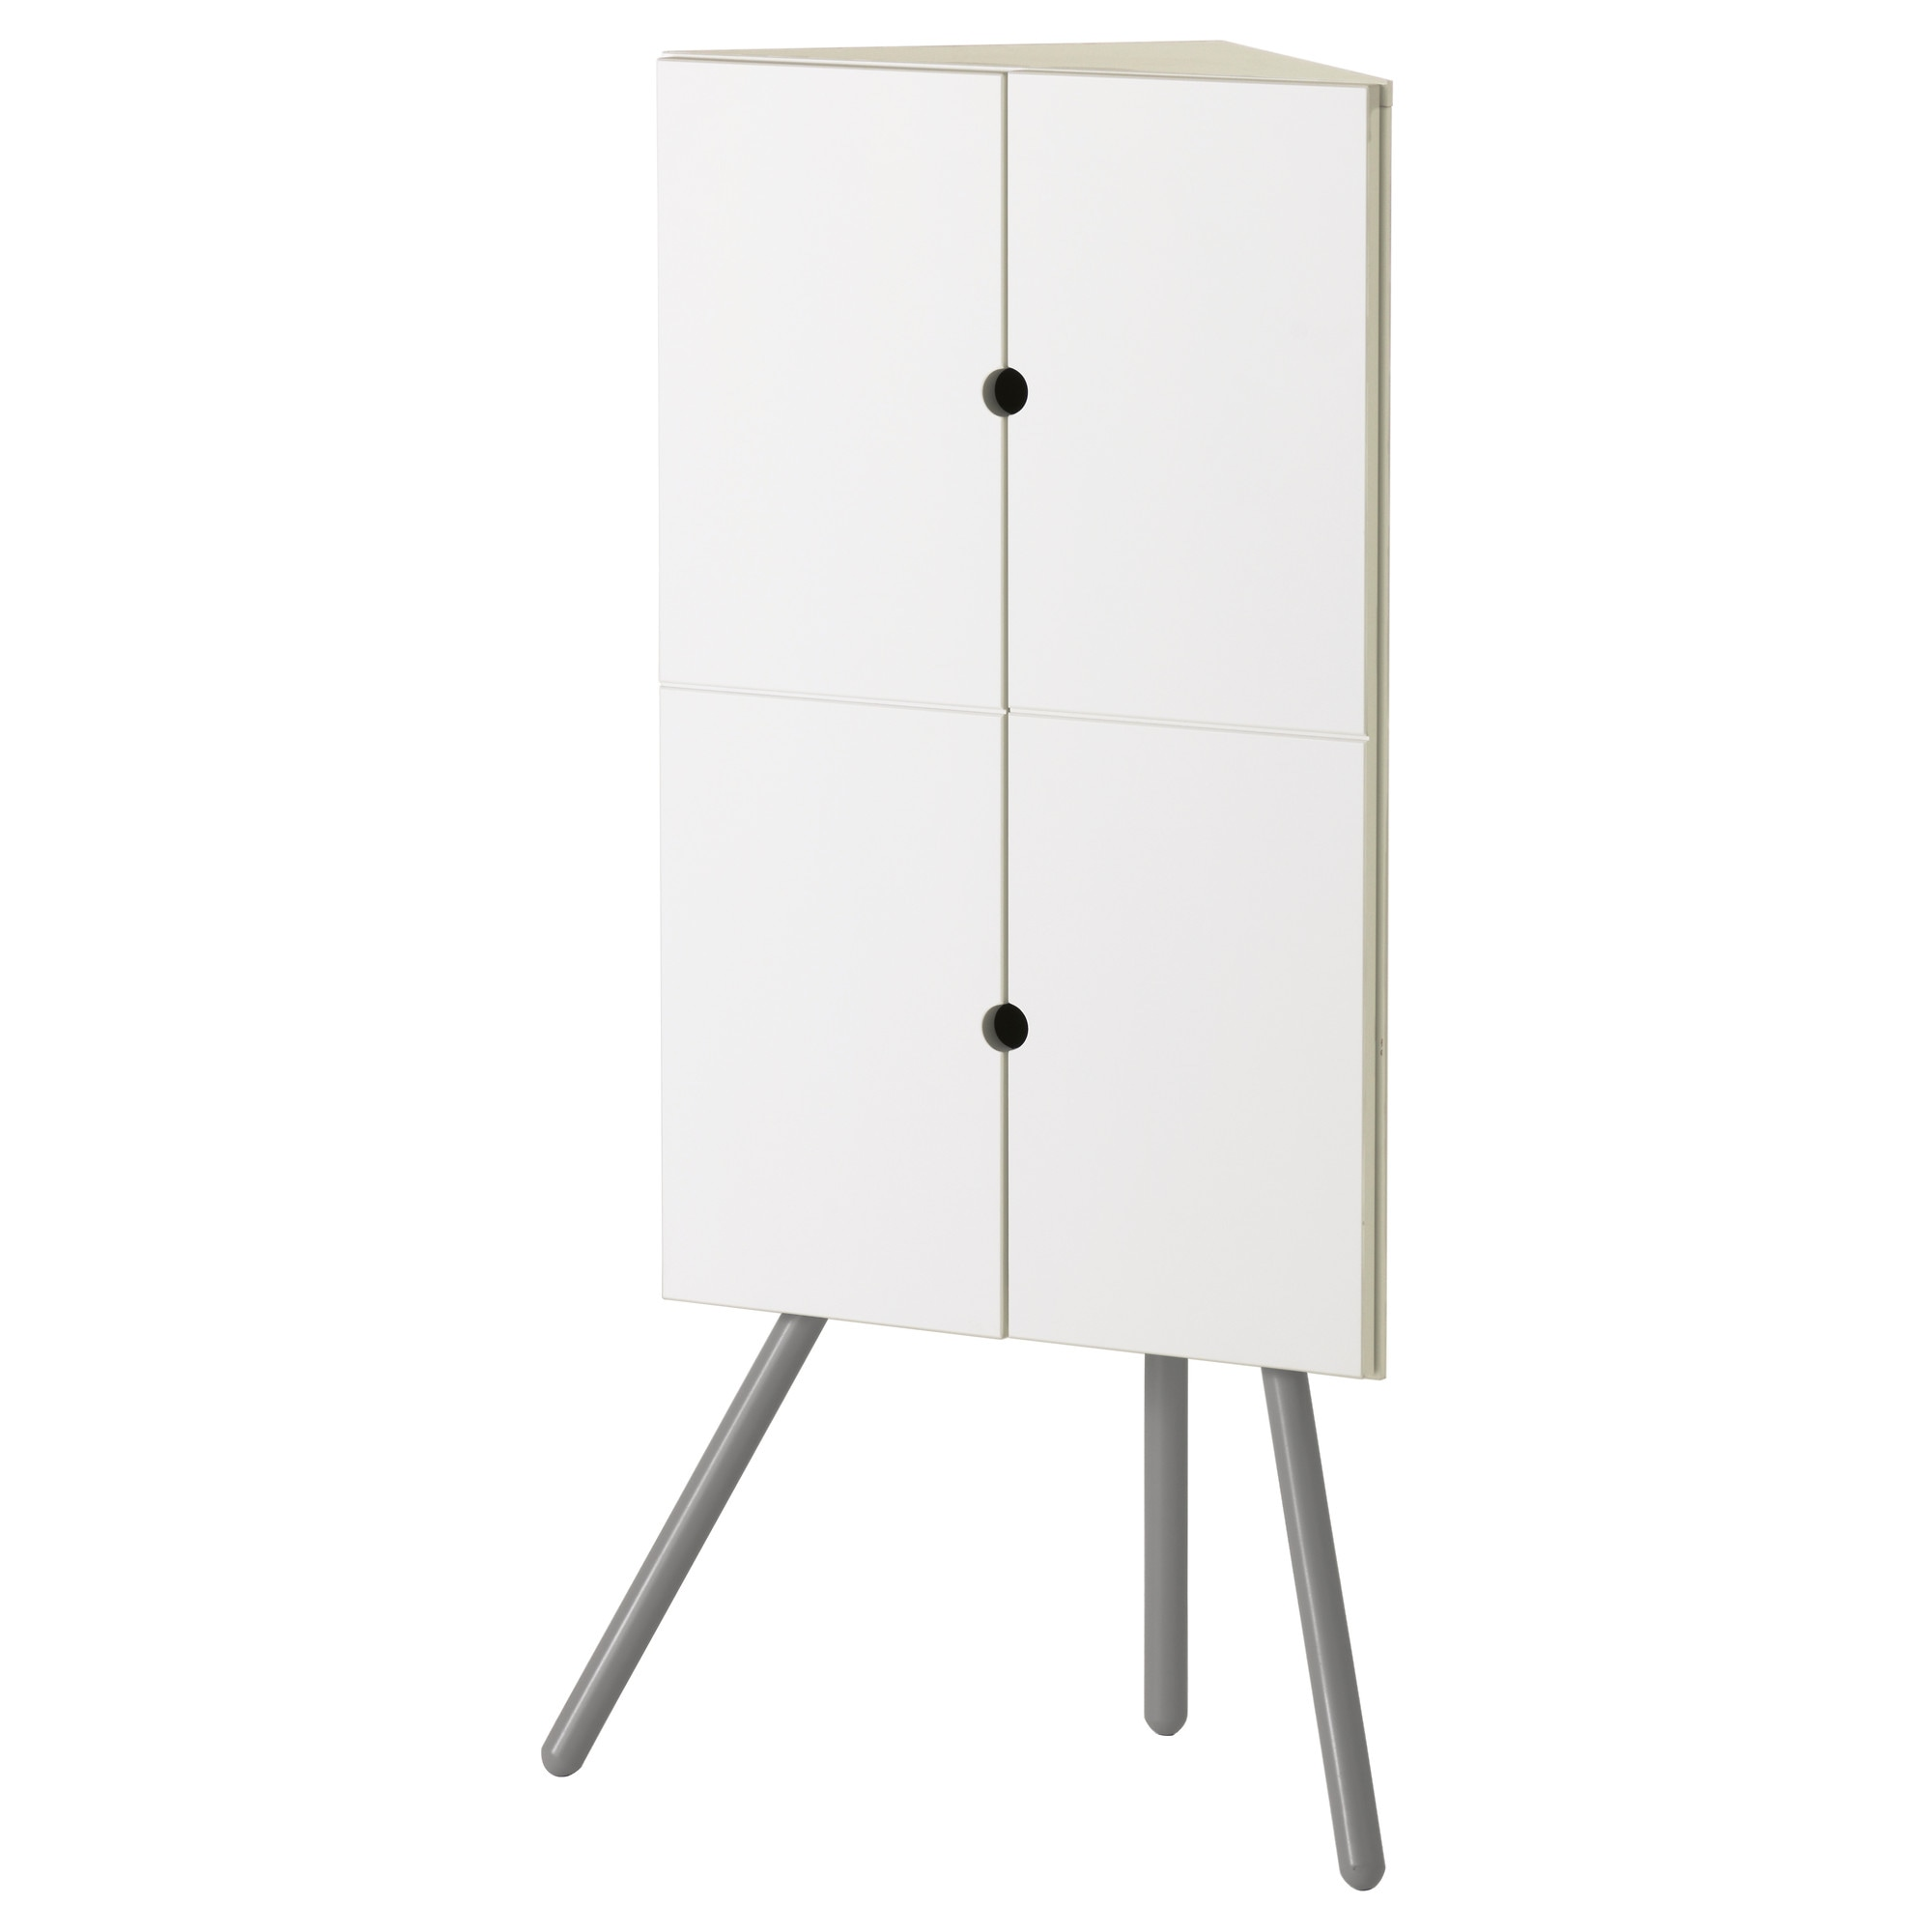 Meuble En Angle Ikea Fashion Designs # Petit Meuble D'Angle Blanc Laque